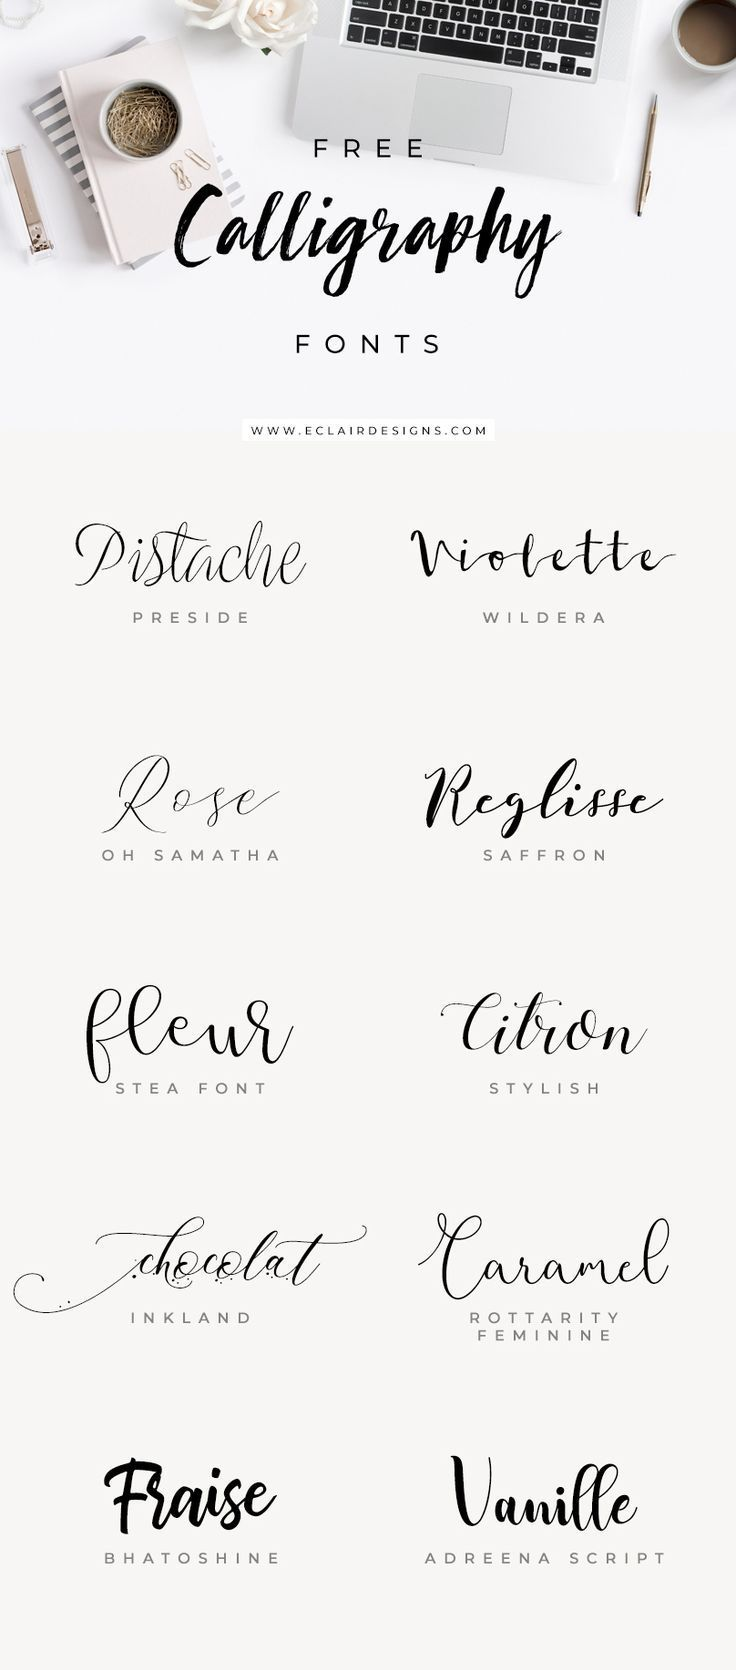 10 FREE CALLIGRAPHY FONTS